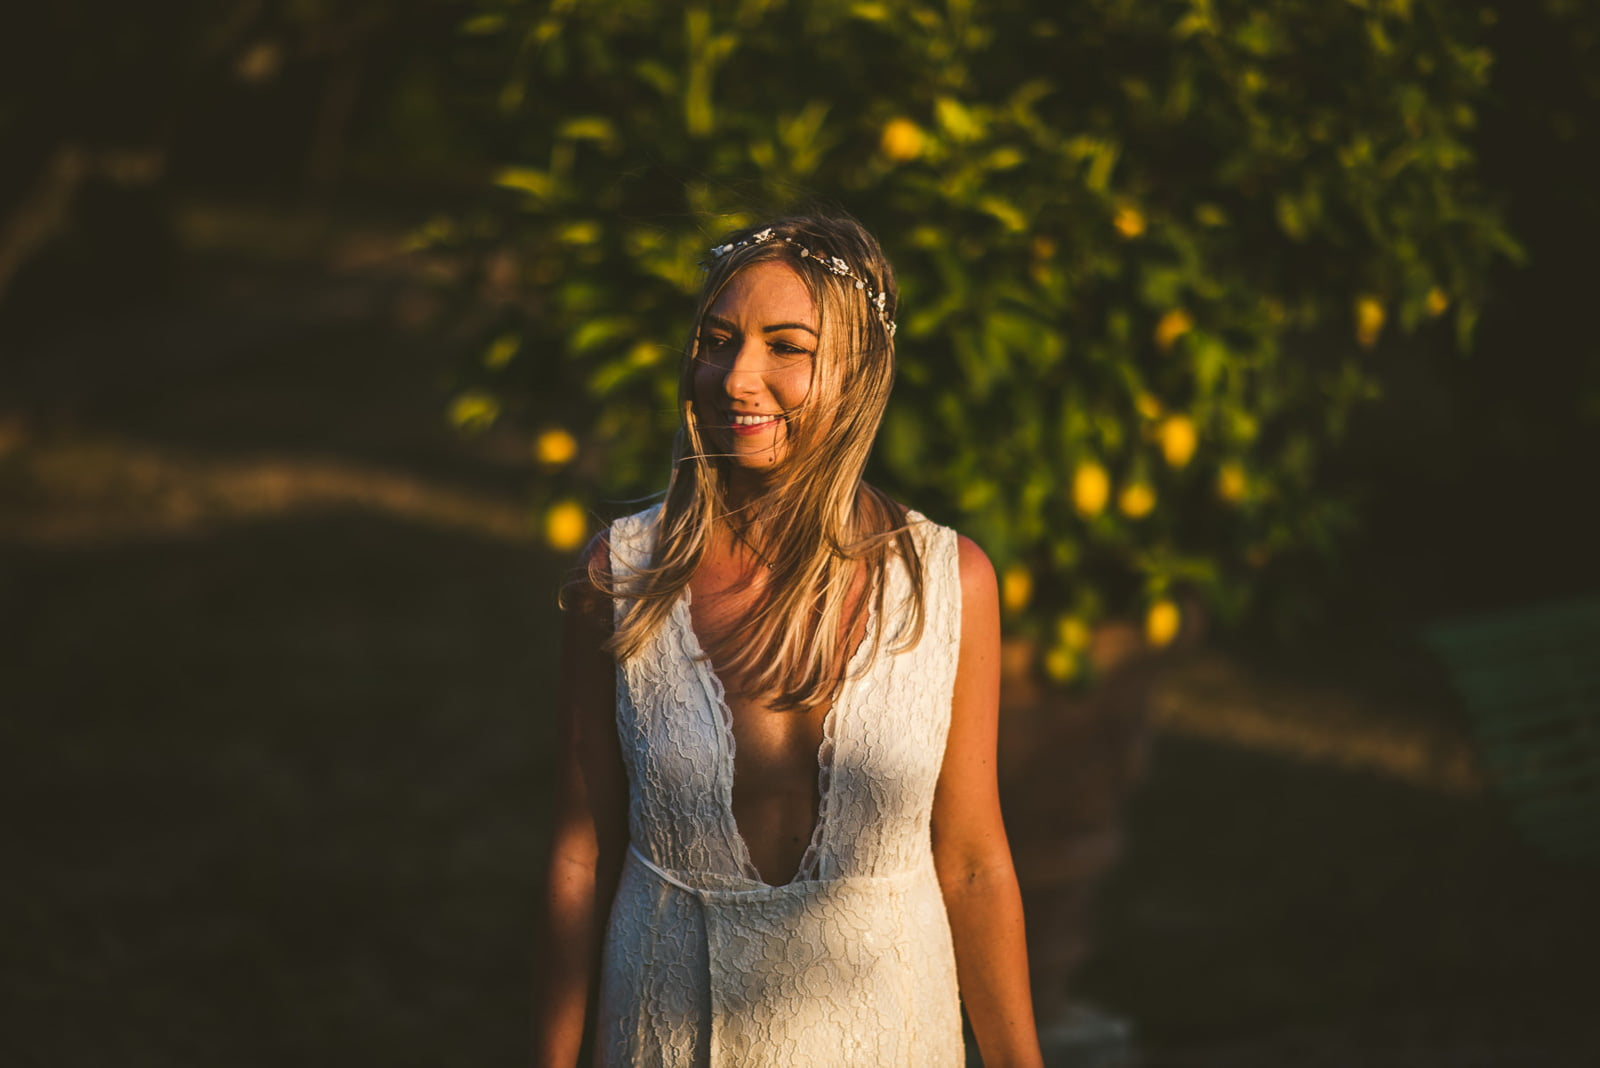 A+L Wedding at Montechiaro, Siena by Federico Pannacci 85